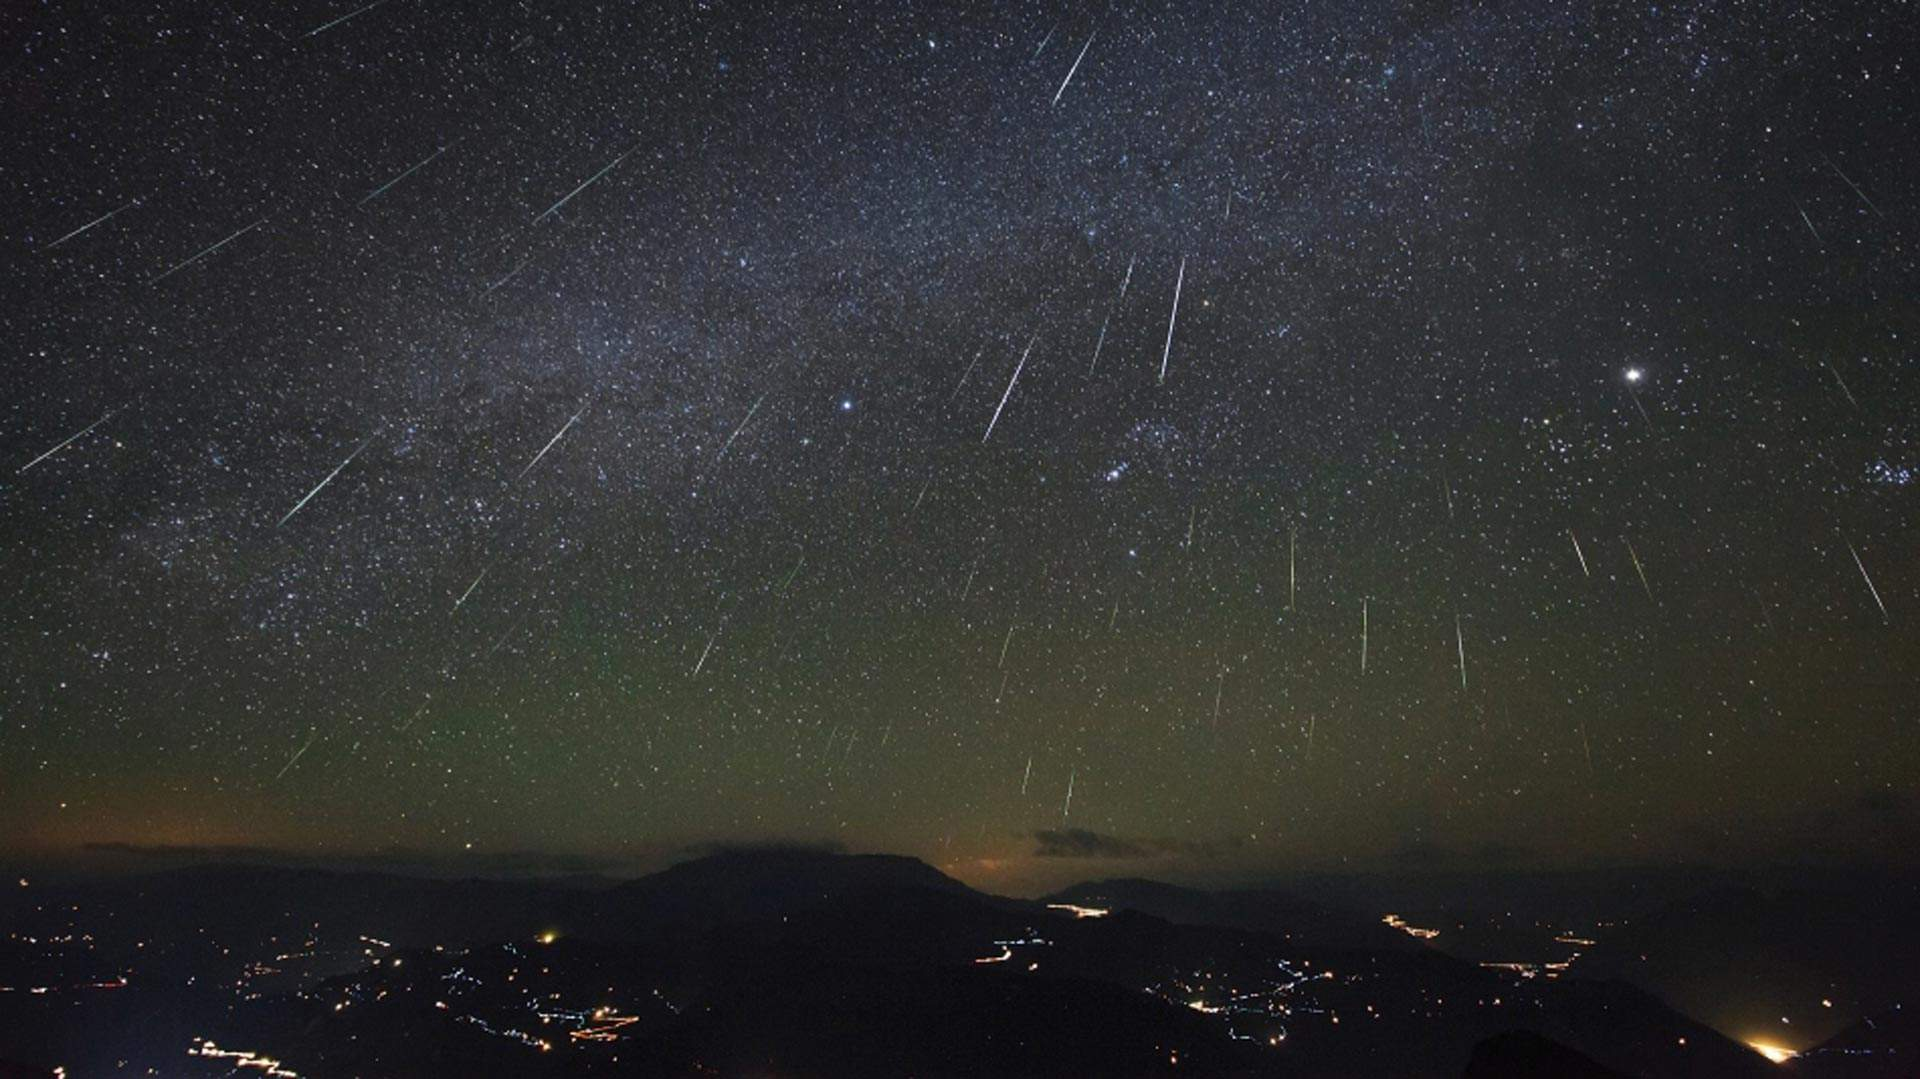 The Impressive Geminids Meteor Shower Will Be Visible in New Zealand Next Month